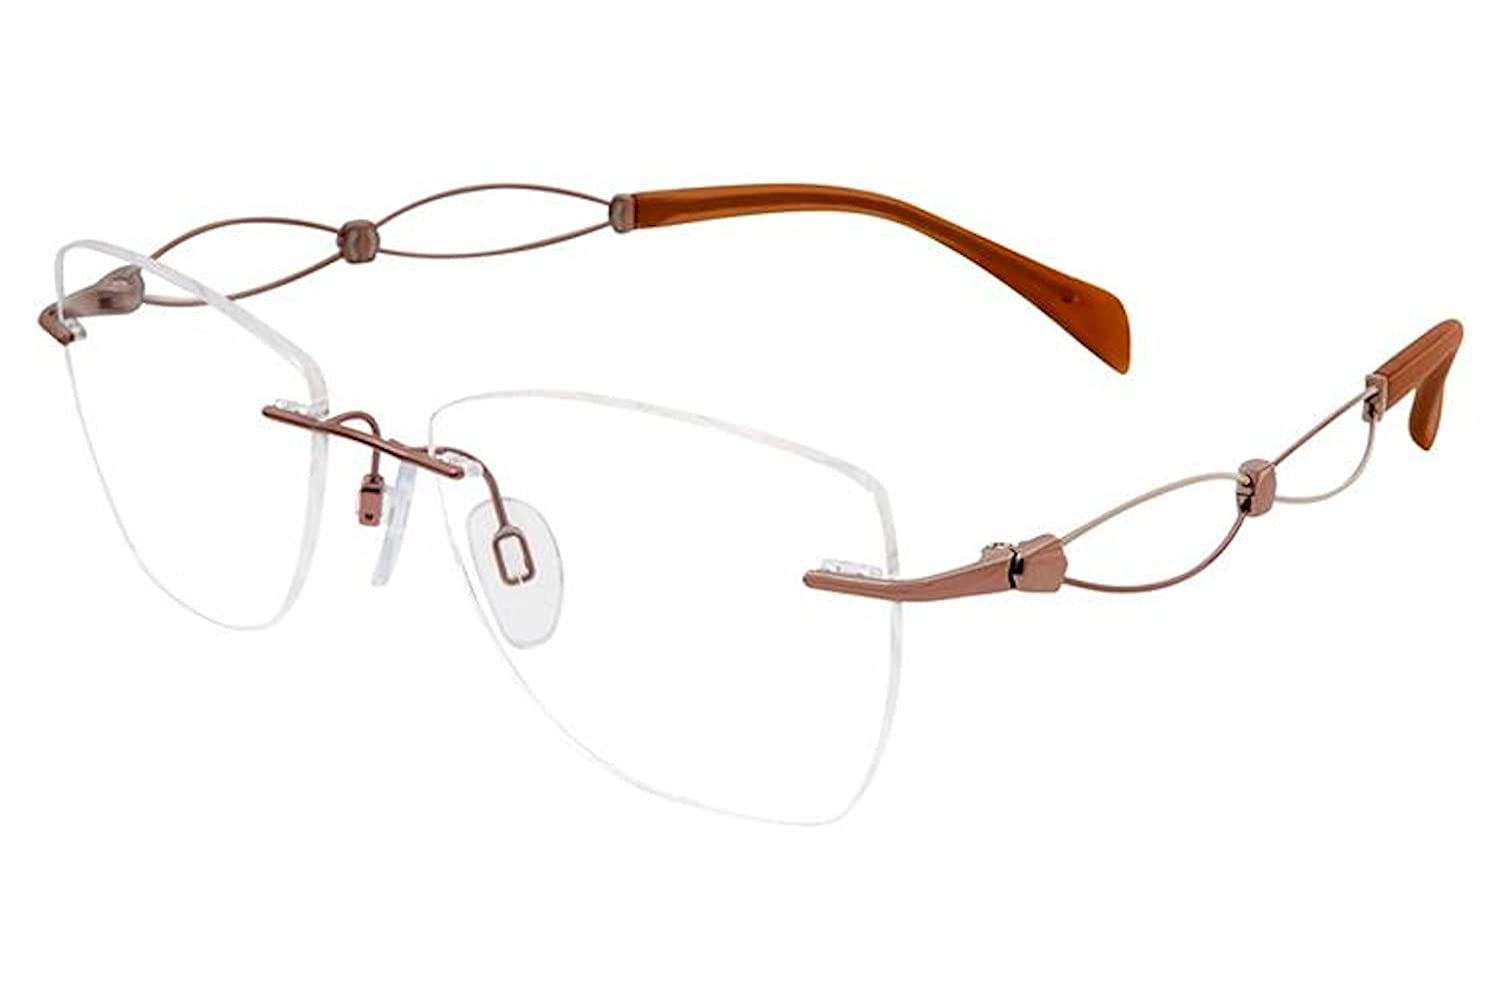 9e4bd6b098 Amazon.com  Charmant Line Art Women s Eyeglasses XL2104 XL 2104 BR Brown  Optical Frame 52mm  Clothing